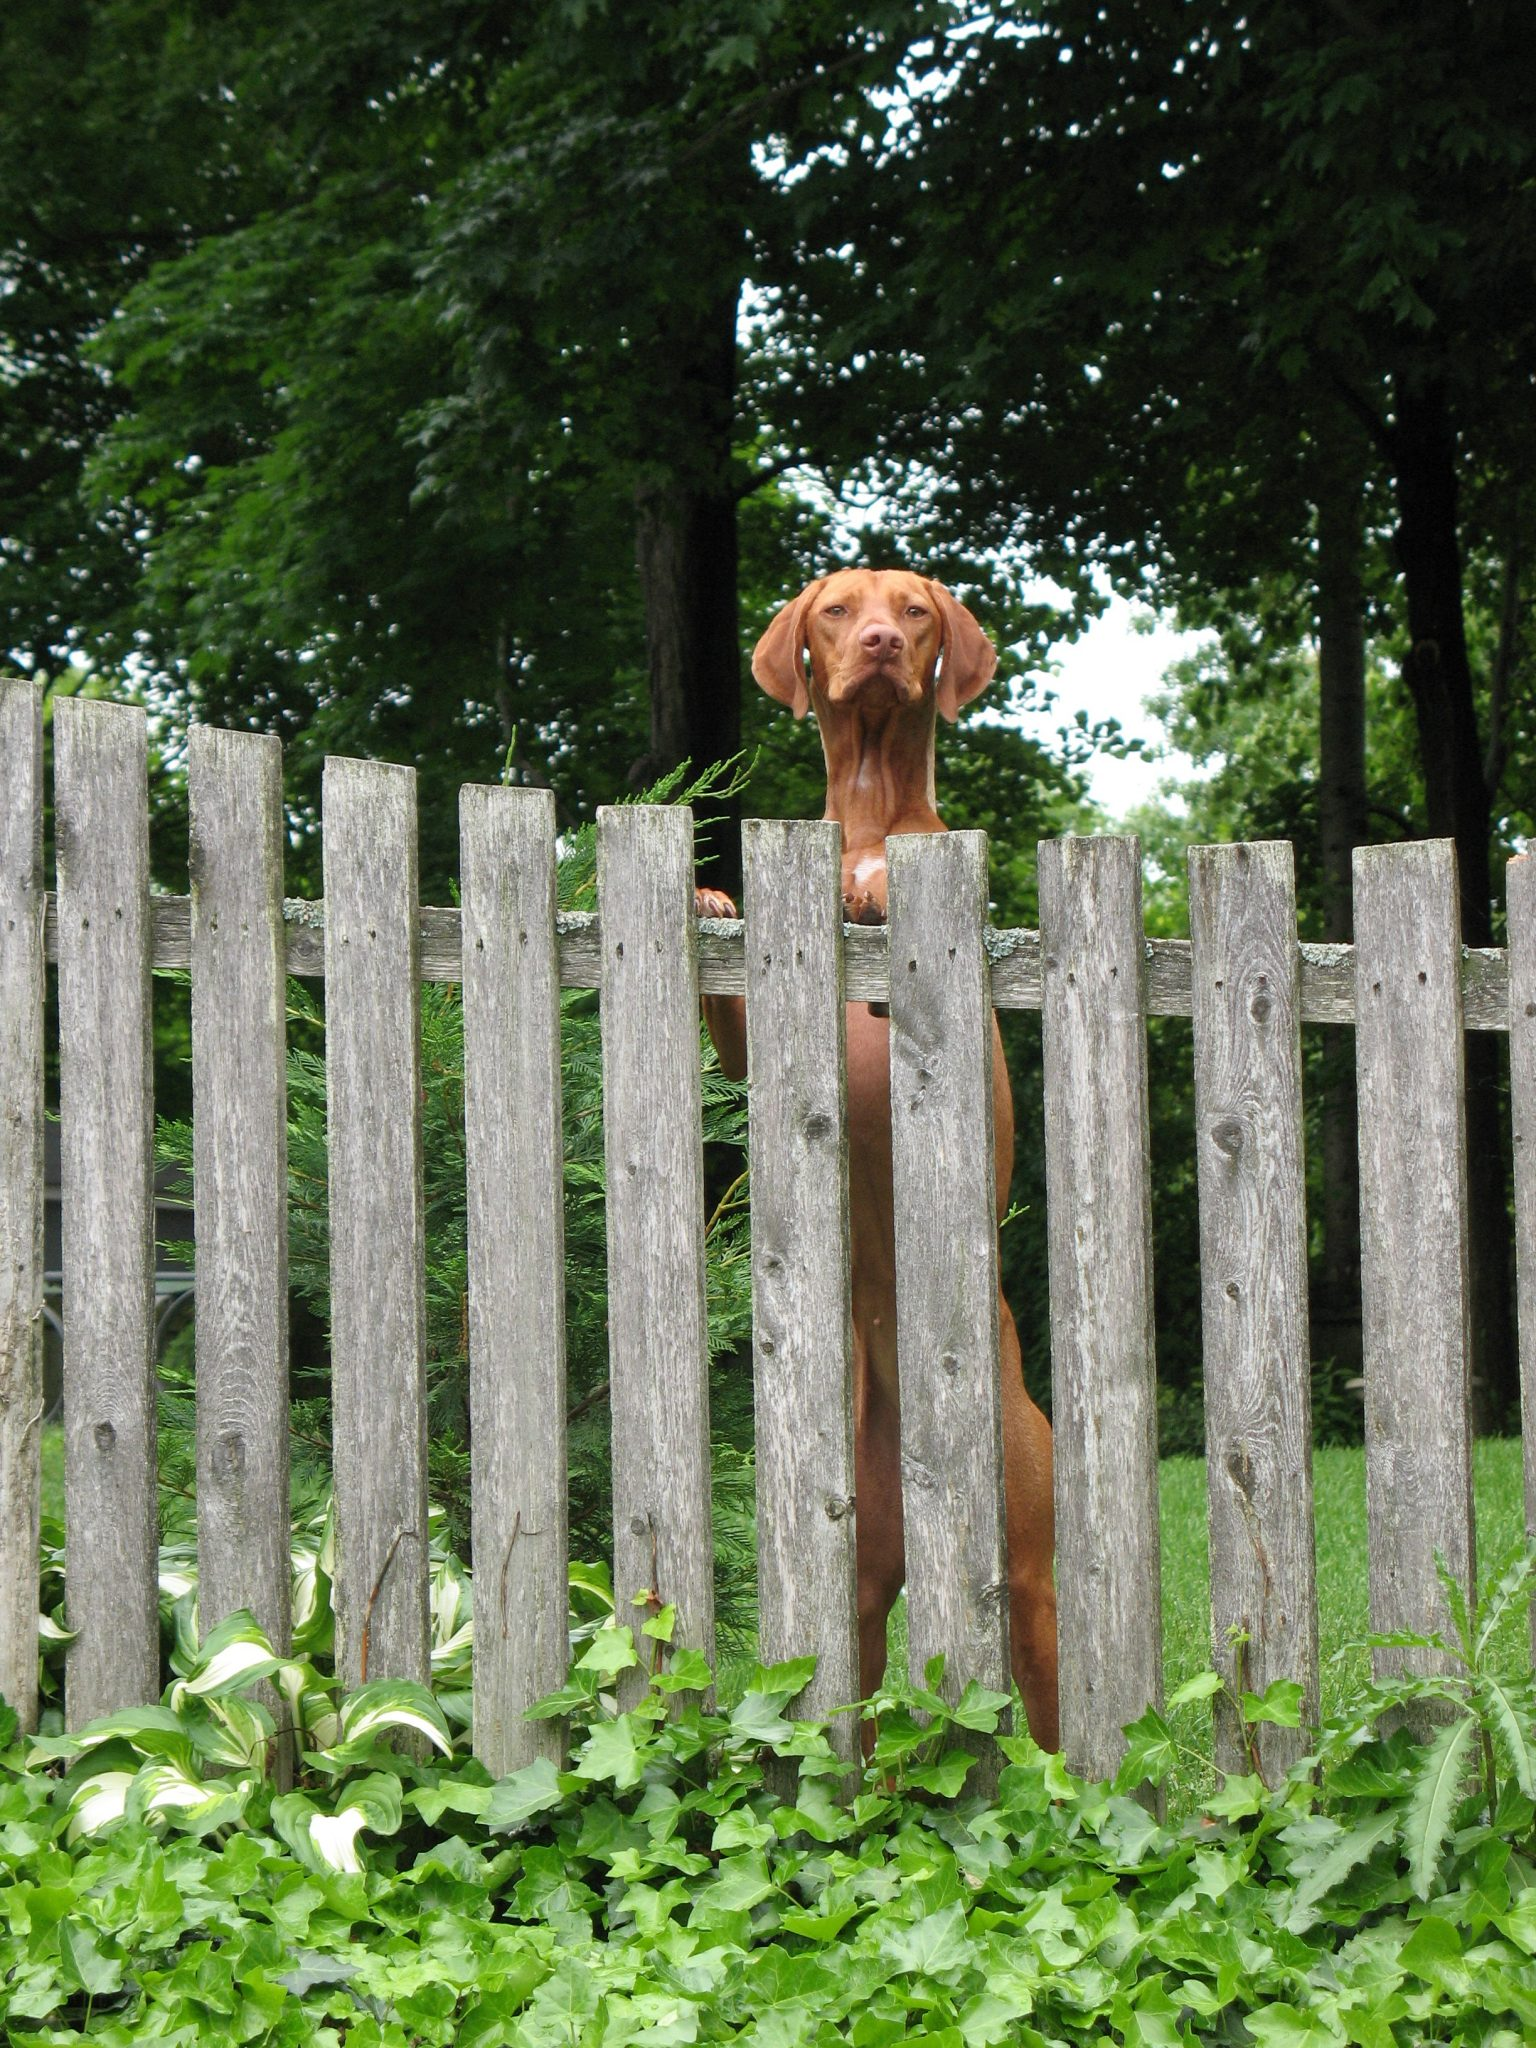 Large dog looks over fence